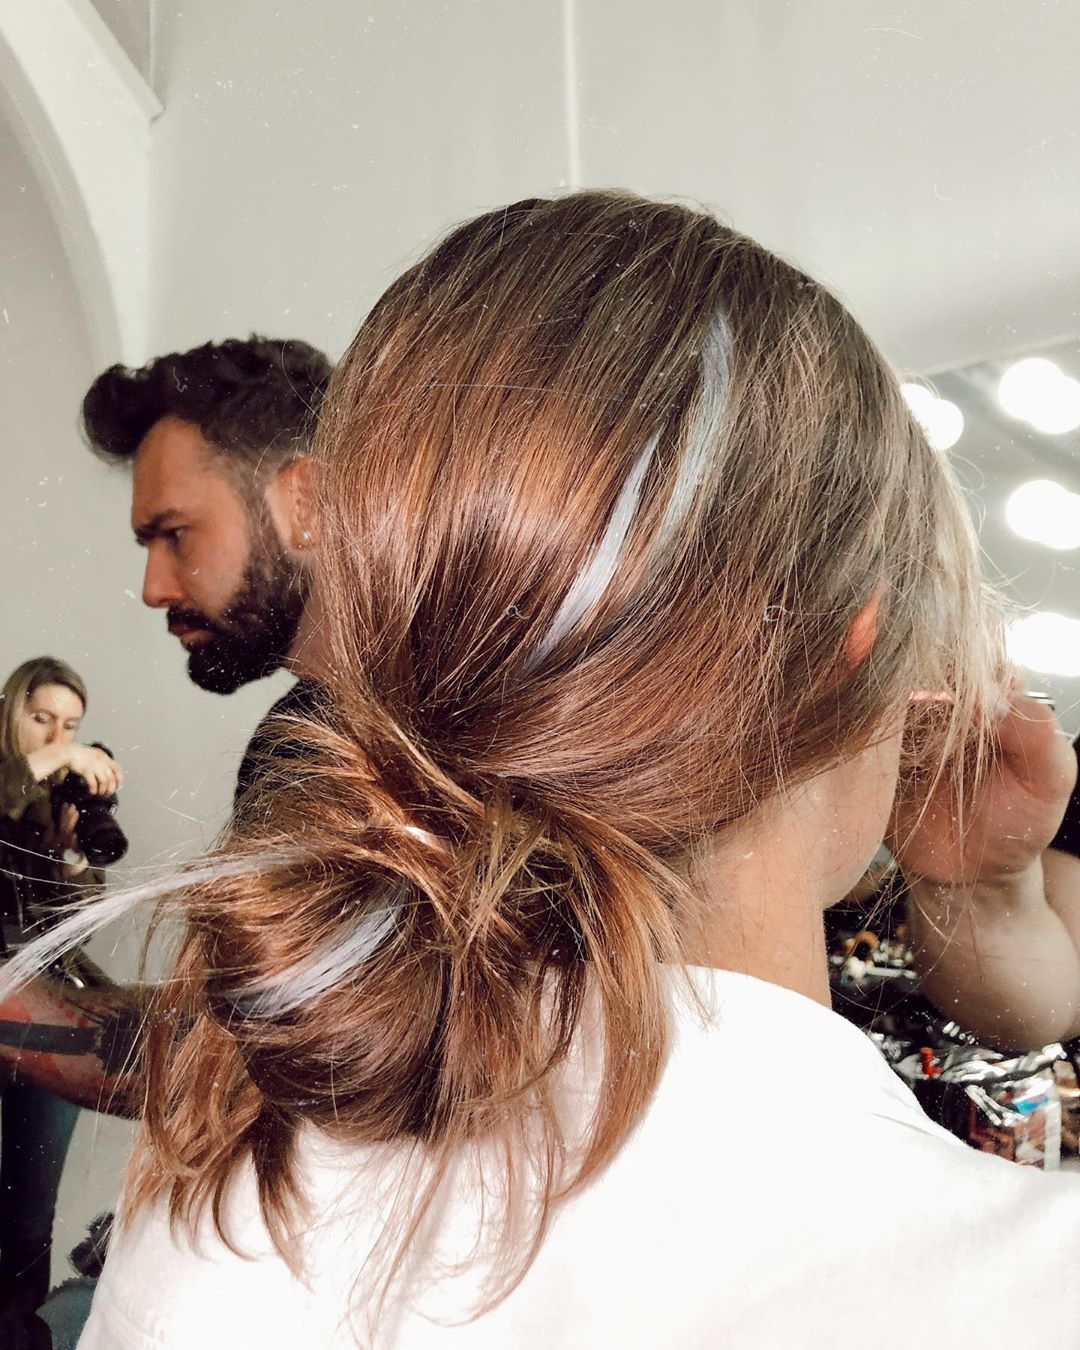 Going-Streaking 10 Biggest Summer Hair Trends of 2020